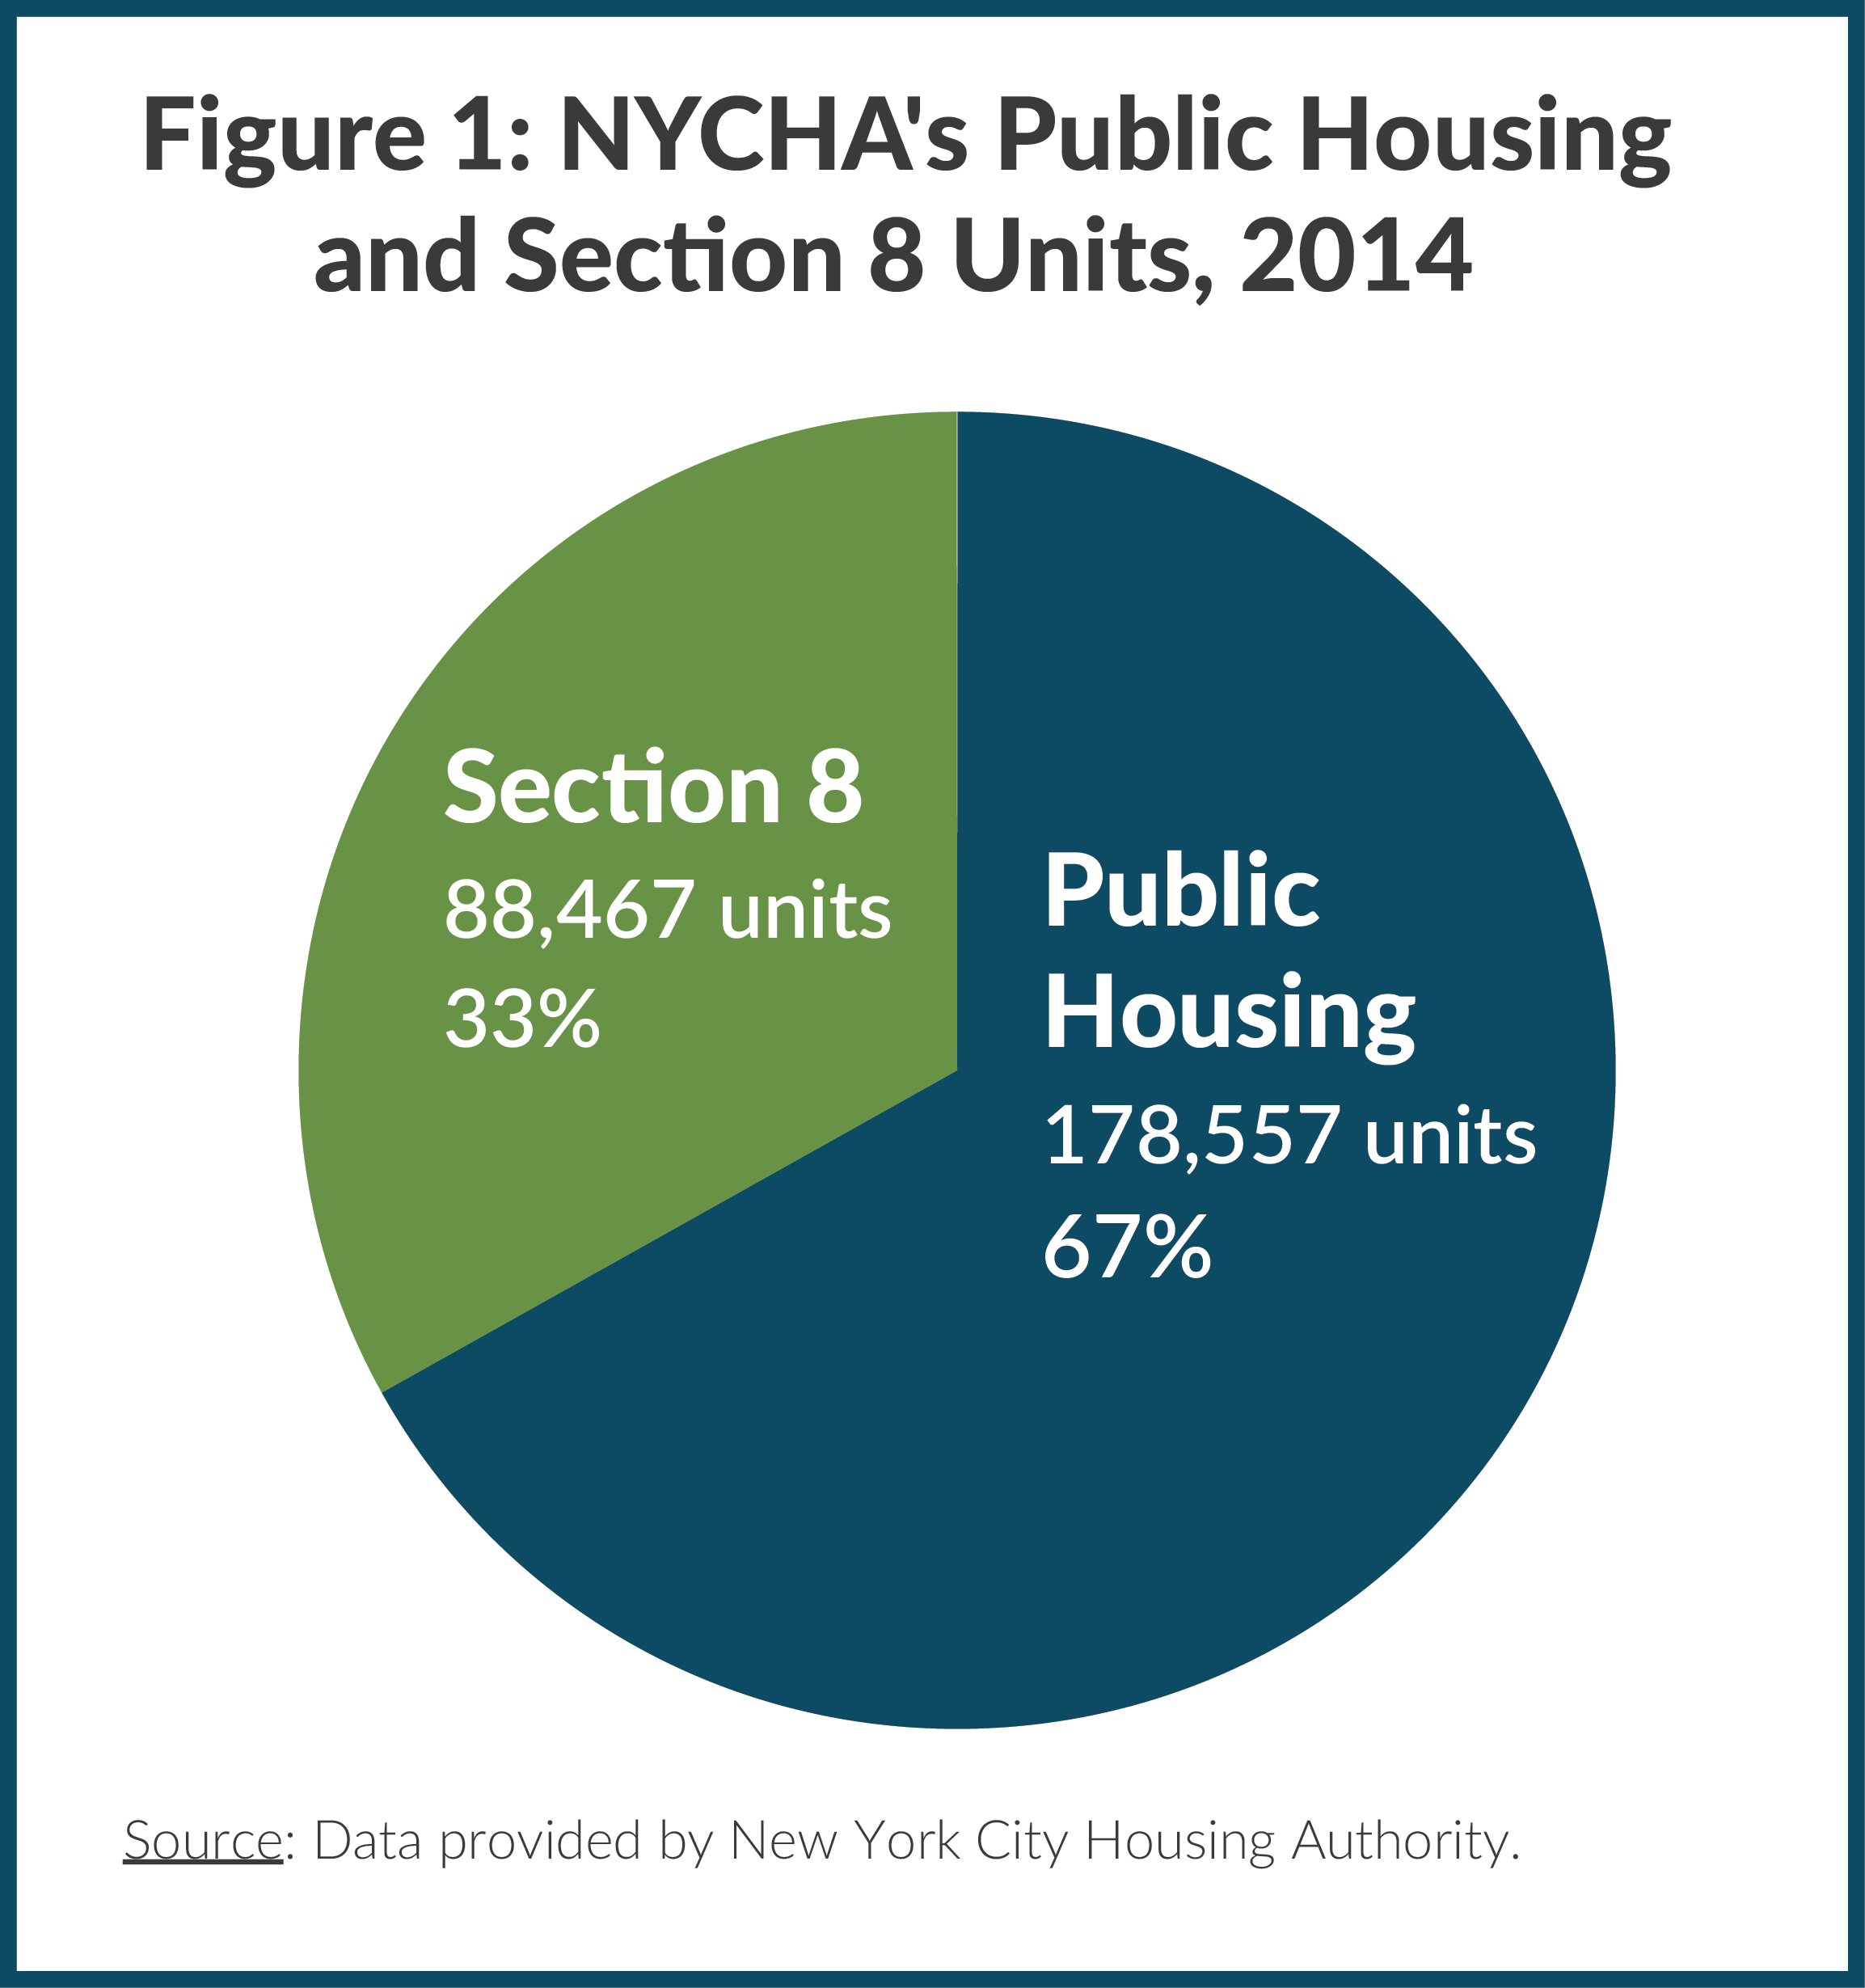 Figure 1: NYCHA's Public Housing and Section 8 Units, 2014